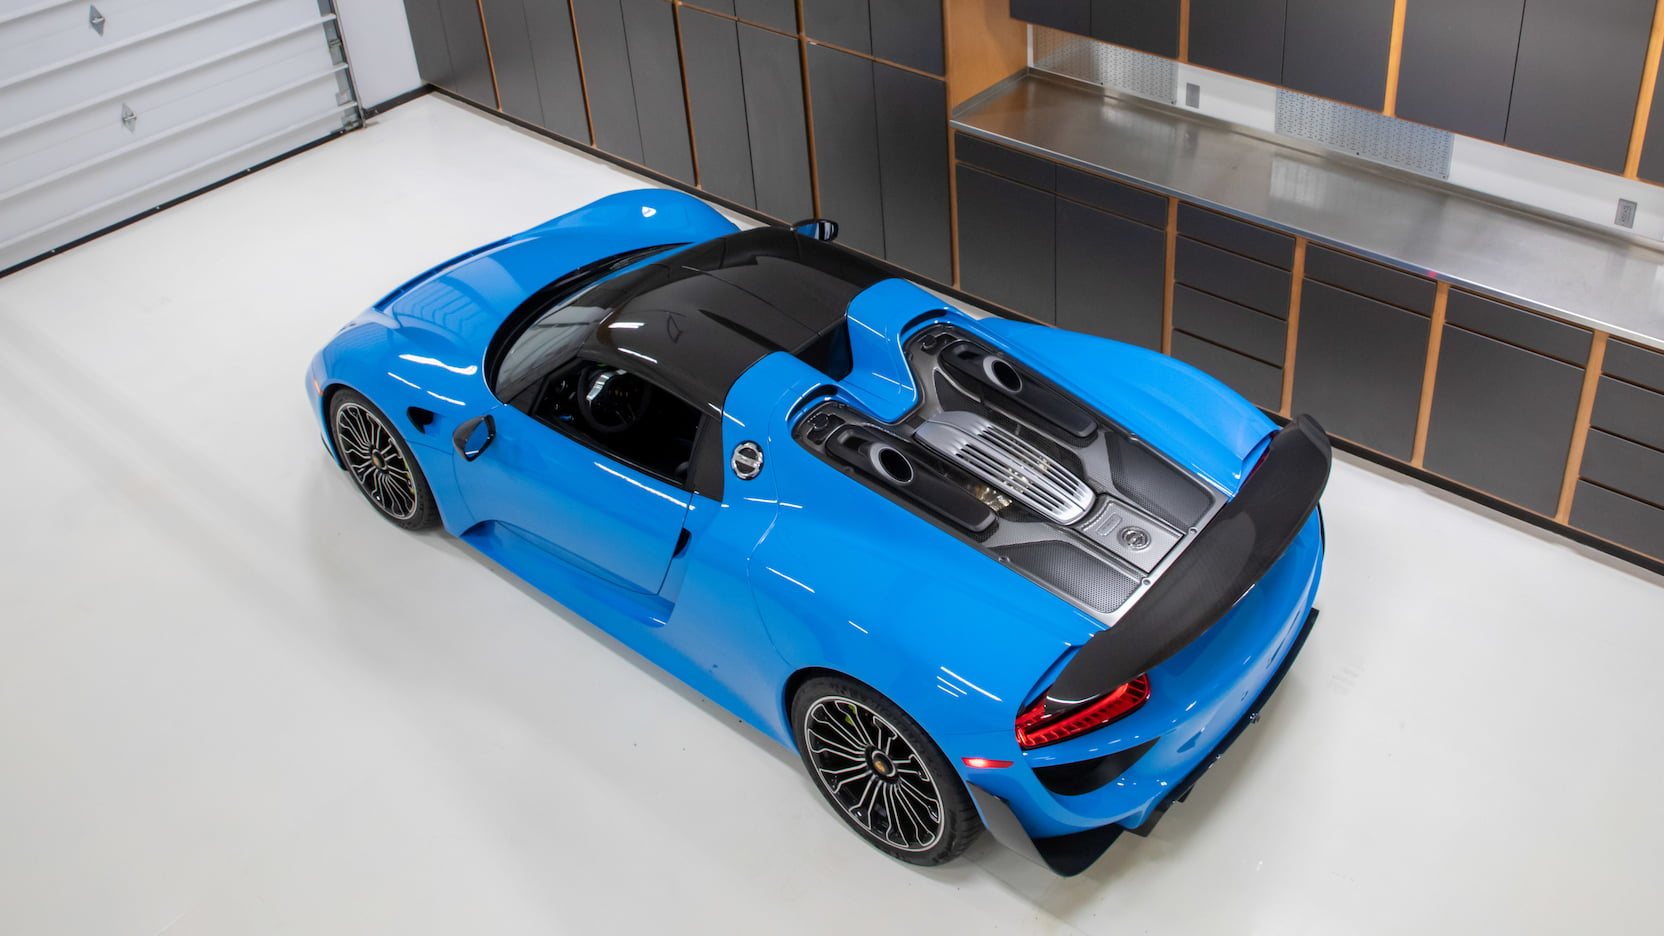 Porsche-918-Spyder-Riviera-Blue-auction-22